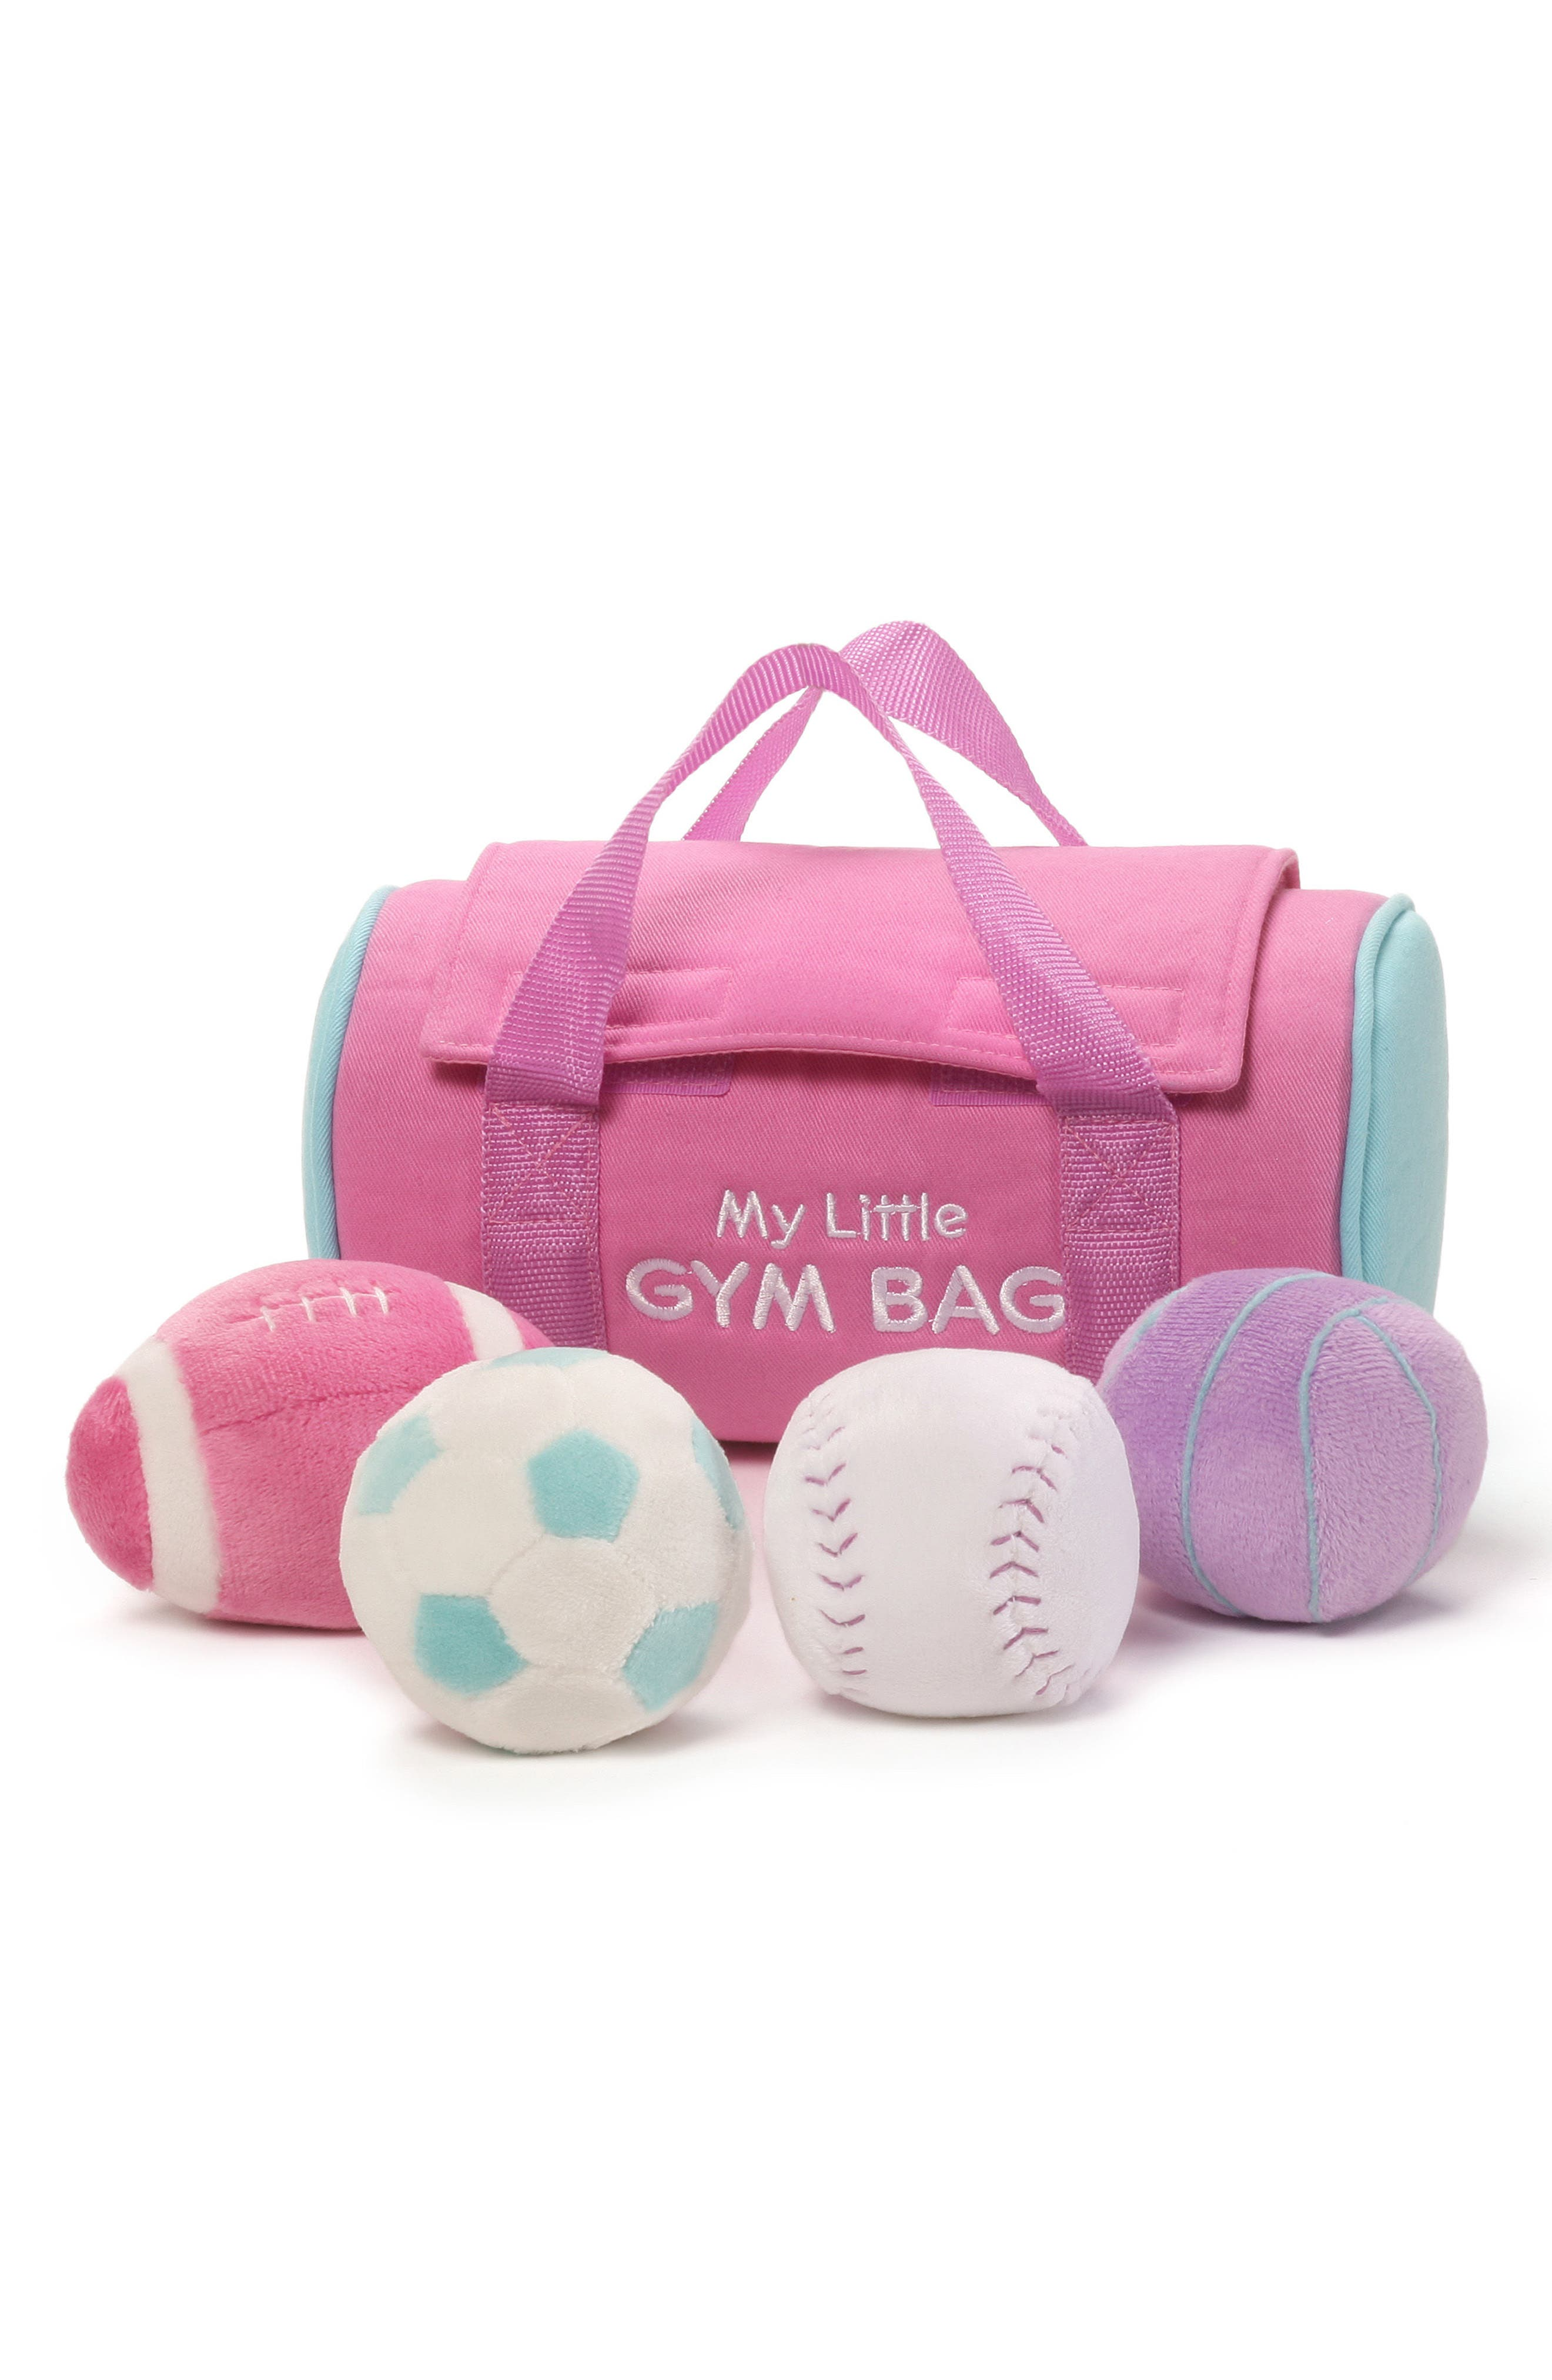 My Little Gym Bag Play Set,                         Main,                         color, PINK